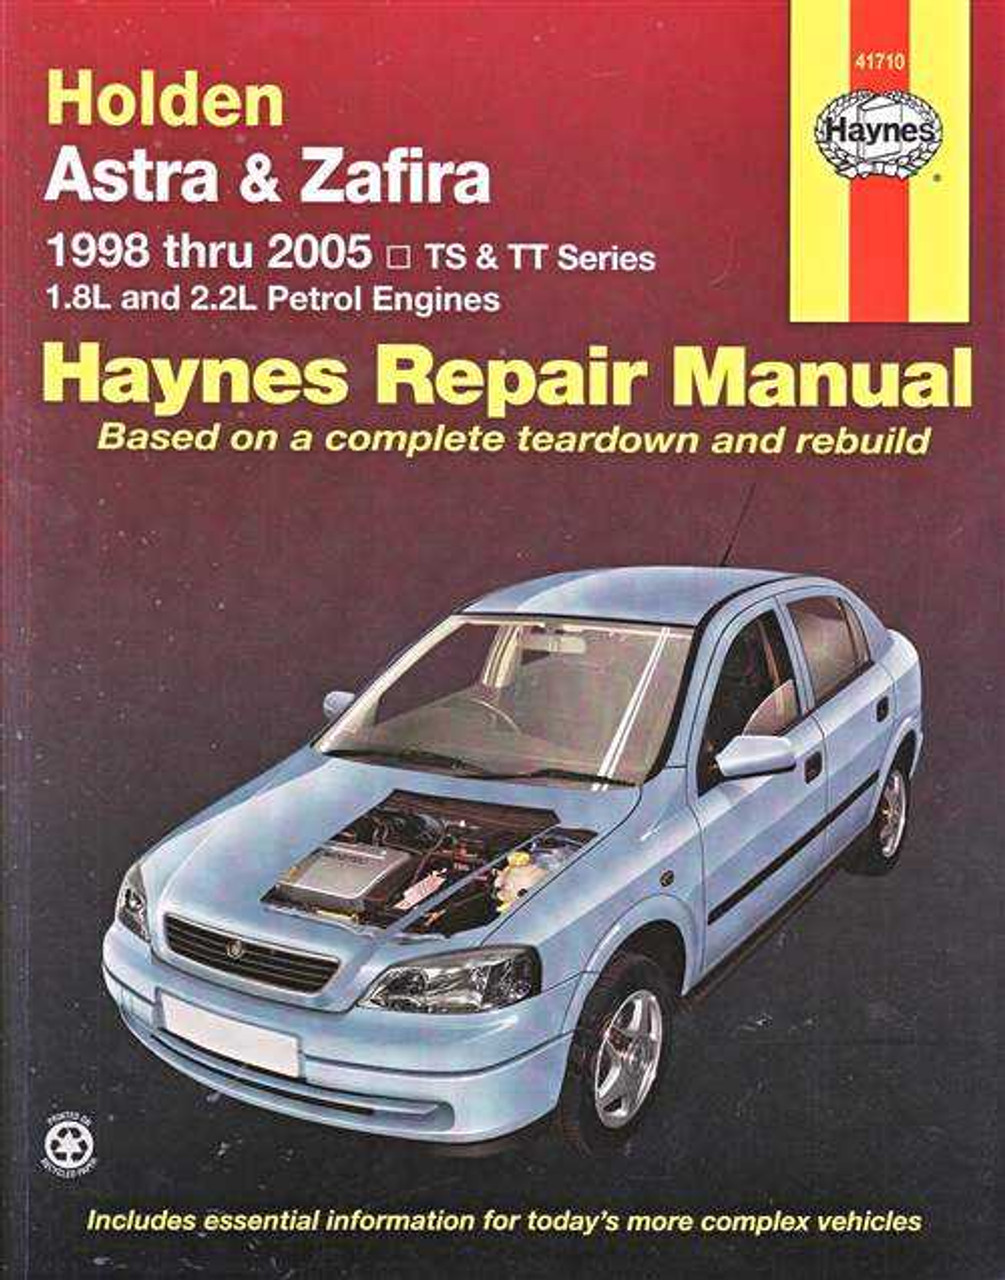 holden astra amp zafira ts tt series 1998 2005 workshop manual rh automotobookshop com au 2001 Holden Astra 2004 Holden Astra